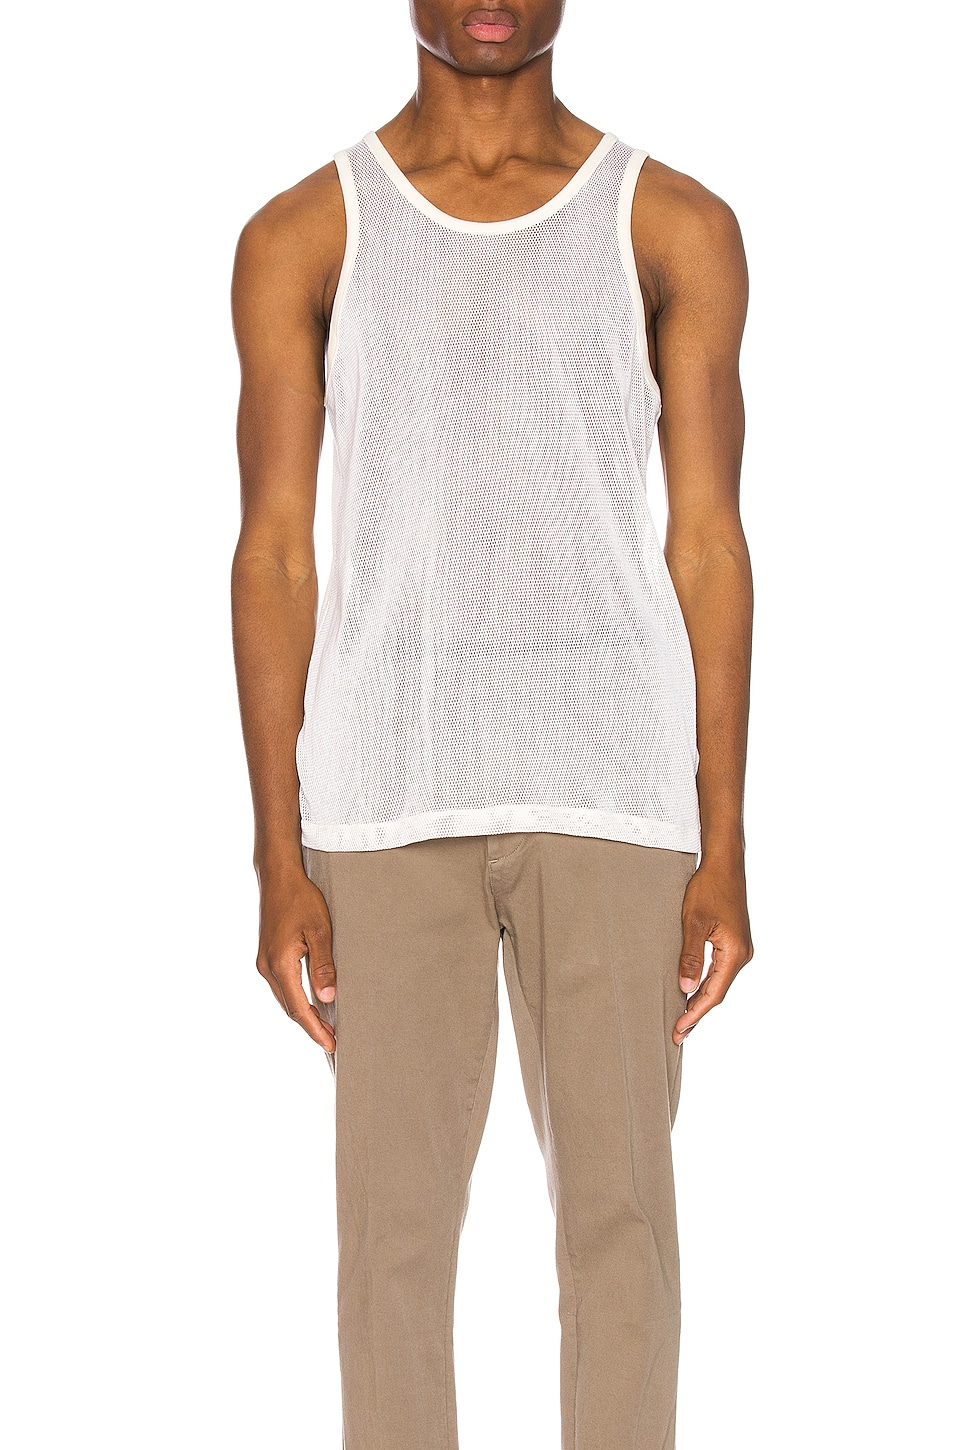 JOHN ELLIOTT Cotton Mesh Tank in Natural